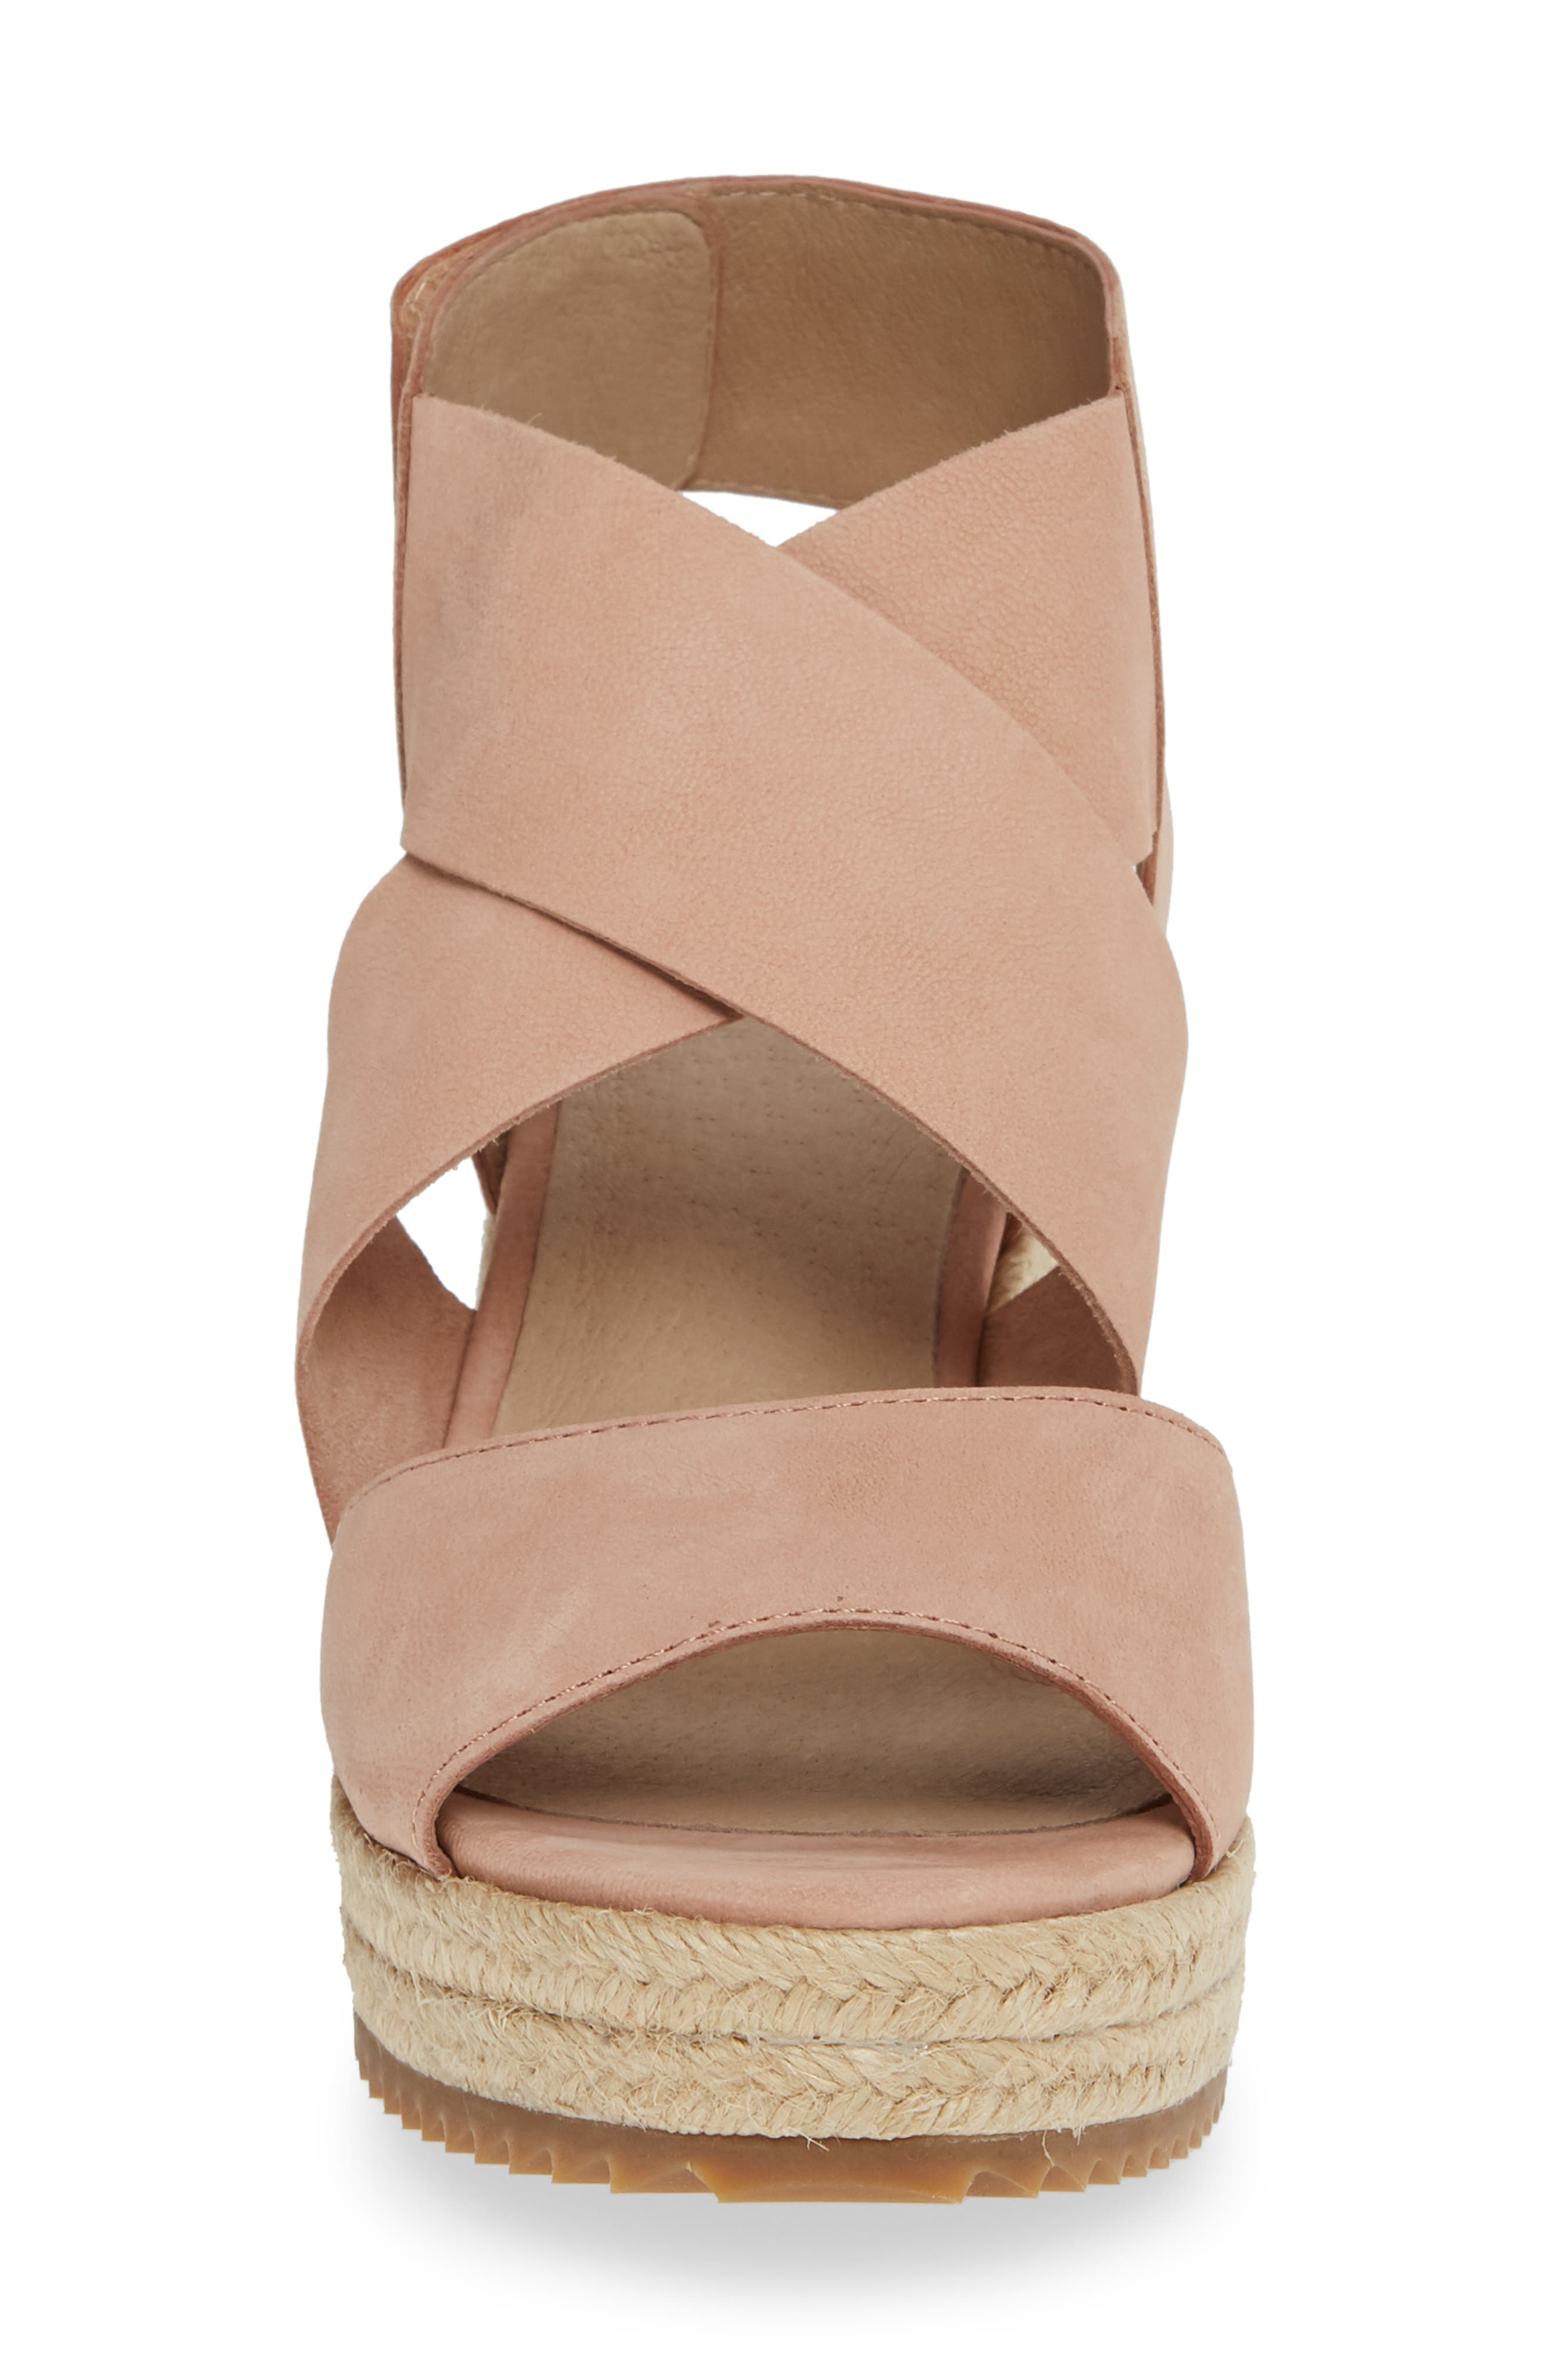 'Willow' Espadrille Wedge Sandal,                             Alternate thumbnail 4, color,                             TOFFEE CREAM NUBUCK